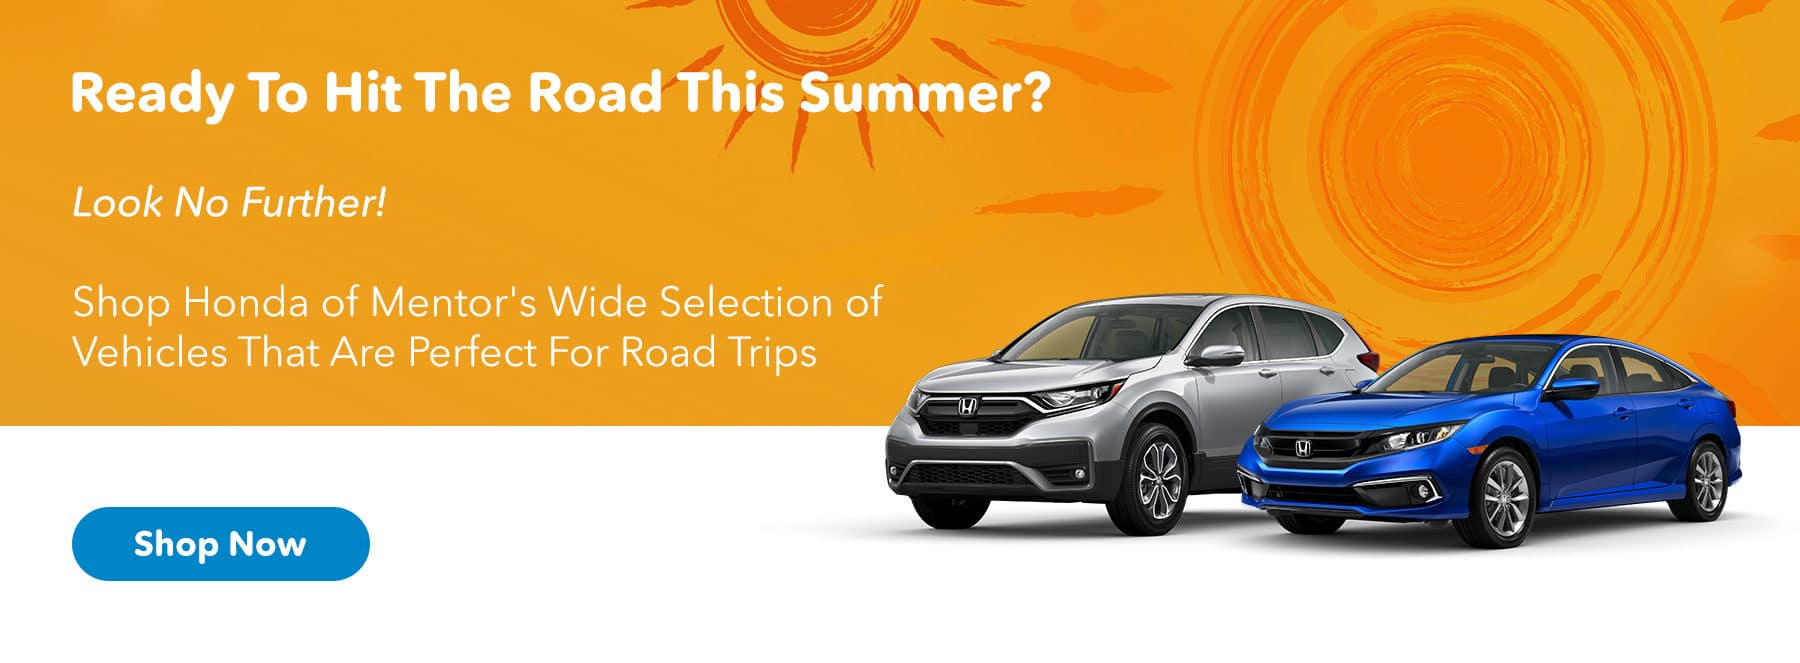 Ready to hit the road this summer? Look no further - Honda of Mentor has a wide selection of inventory